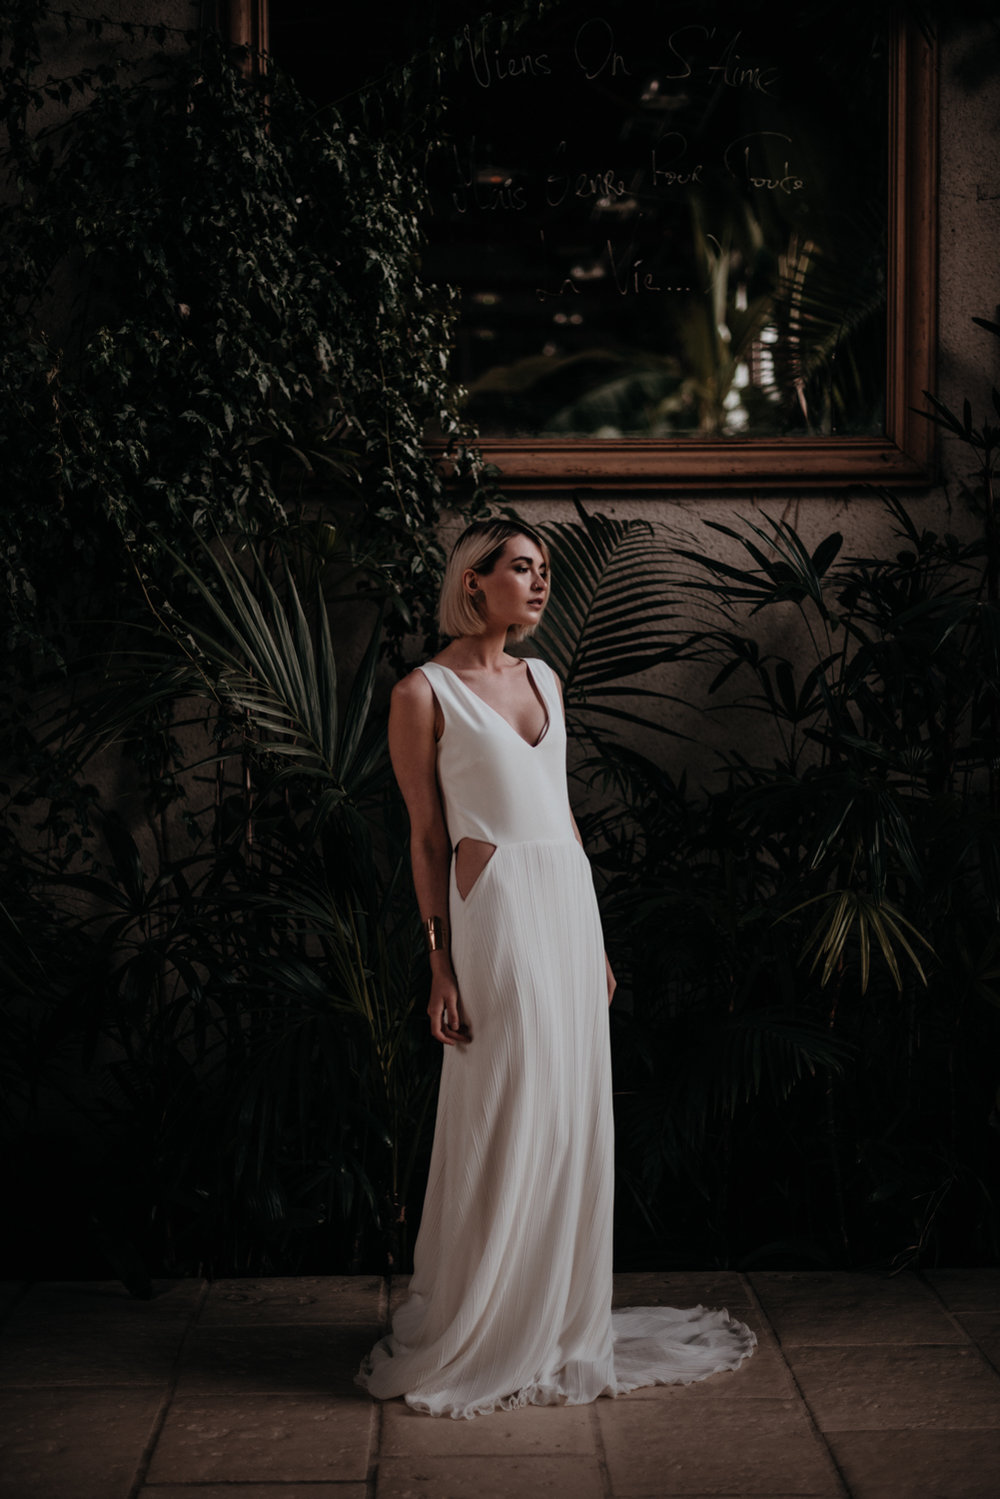 E + F inspiration vegetal tropical minimaliste espace nobuyoshi |  mariage reportage alternatif moody intime vintage naturel boho boheme |  PHOTOGRAPHE mariage PARIS france destination  | FREYIA photography-18.jpg